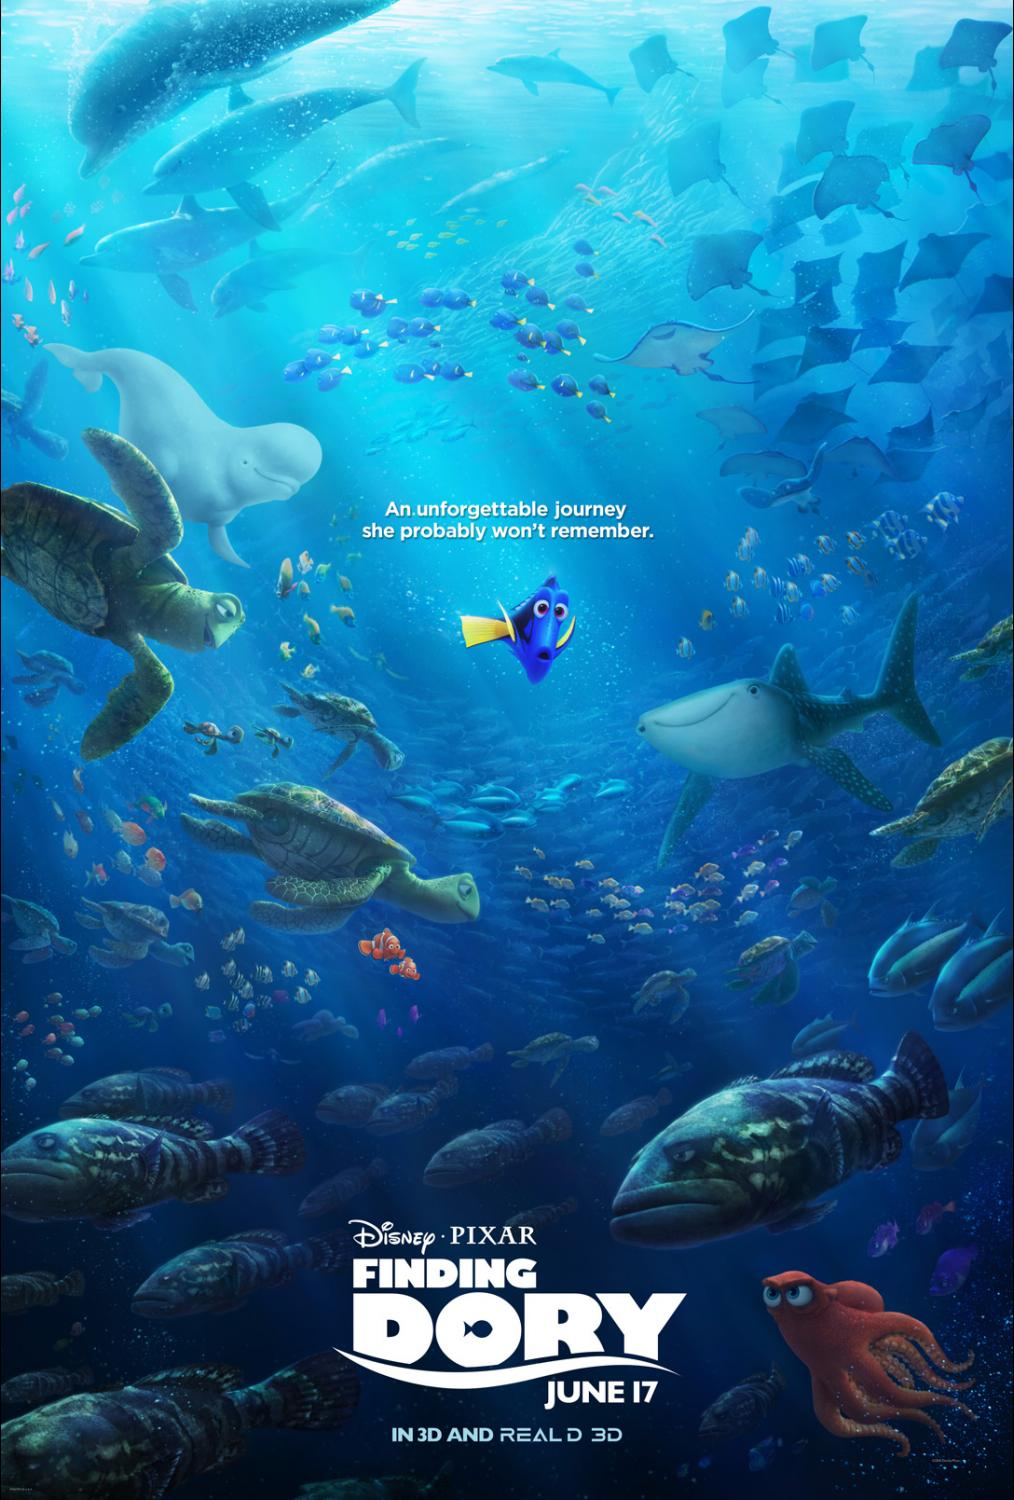 Pixar Returns to Greatness: Finding Dory Review